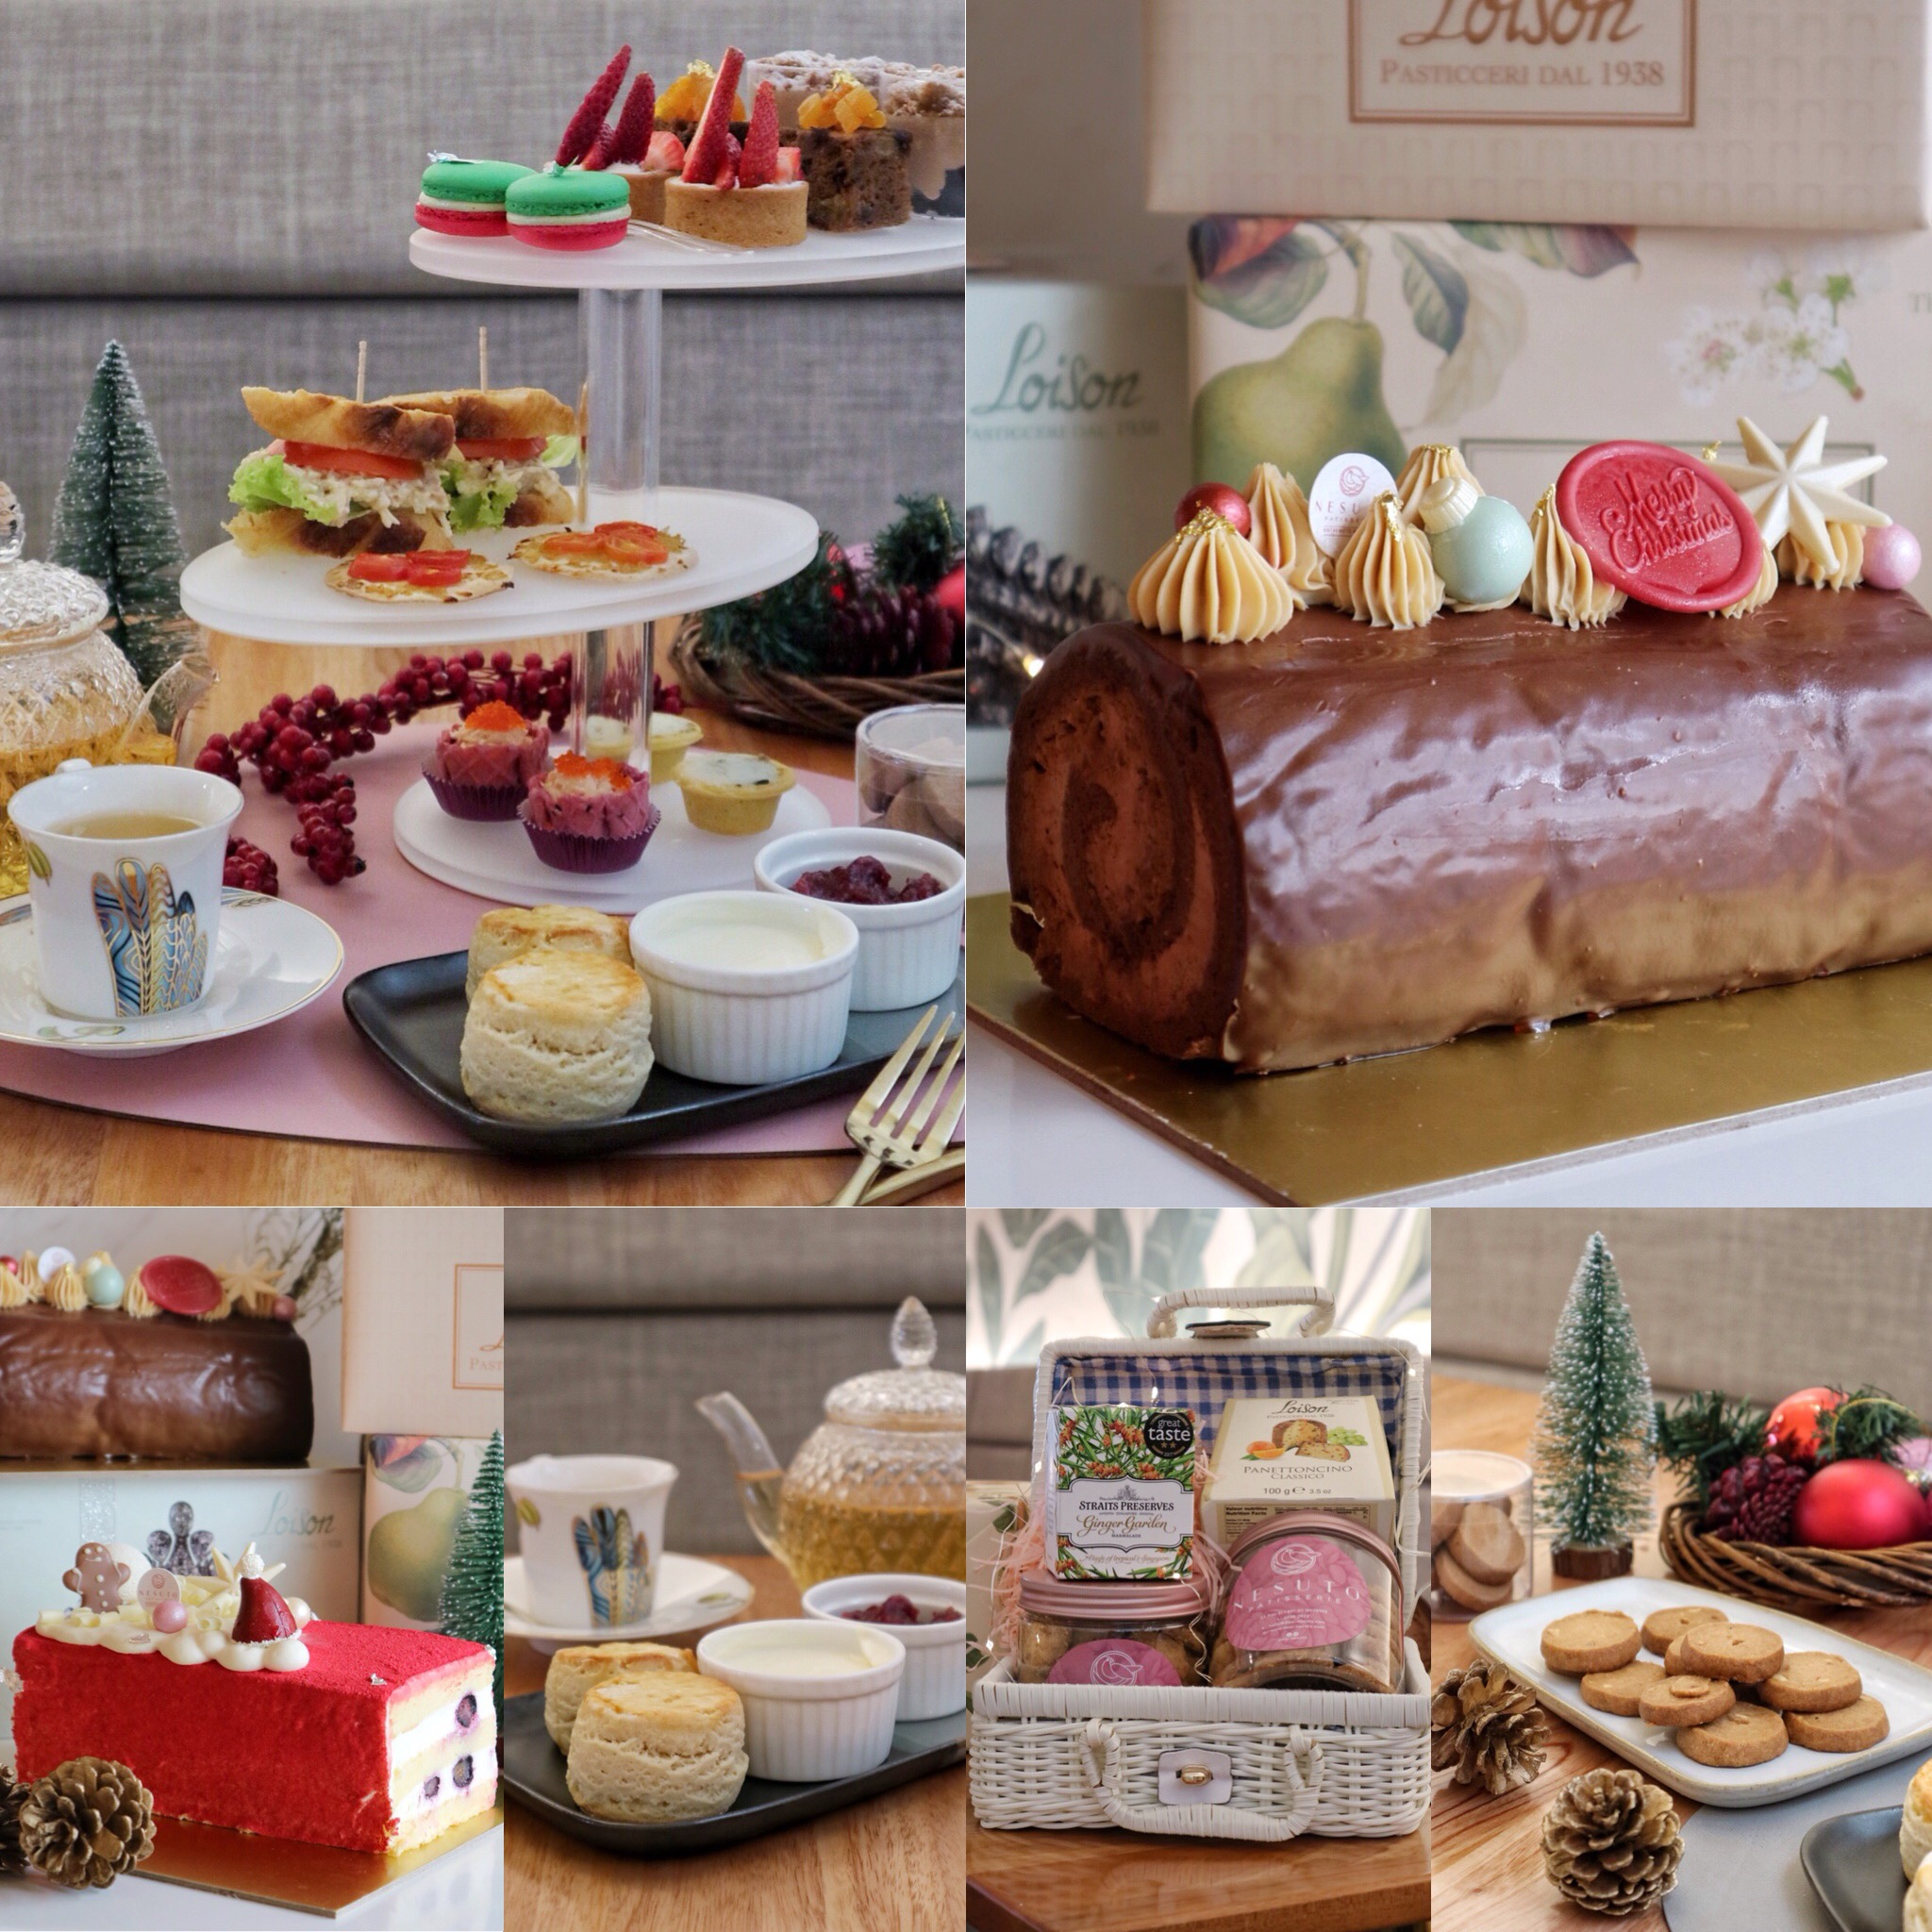 Nesuto: Celebrates Christmas with New Enchanted High Tea Set, Exquisite Log Cakes & Festive Cookies!